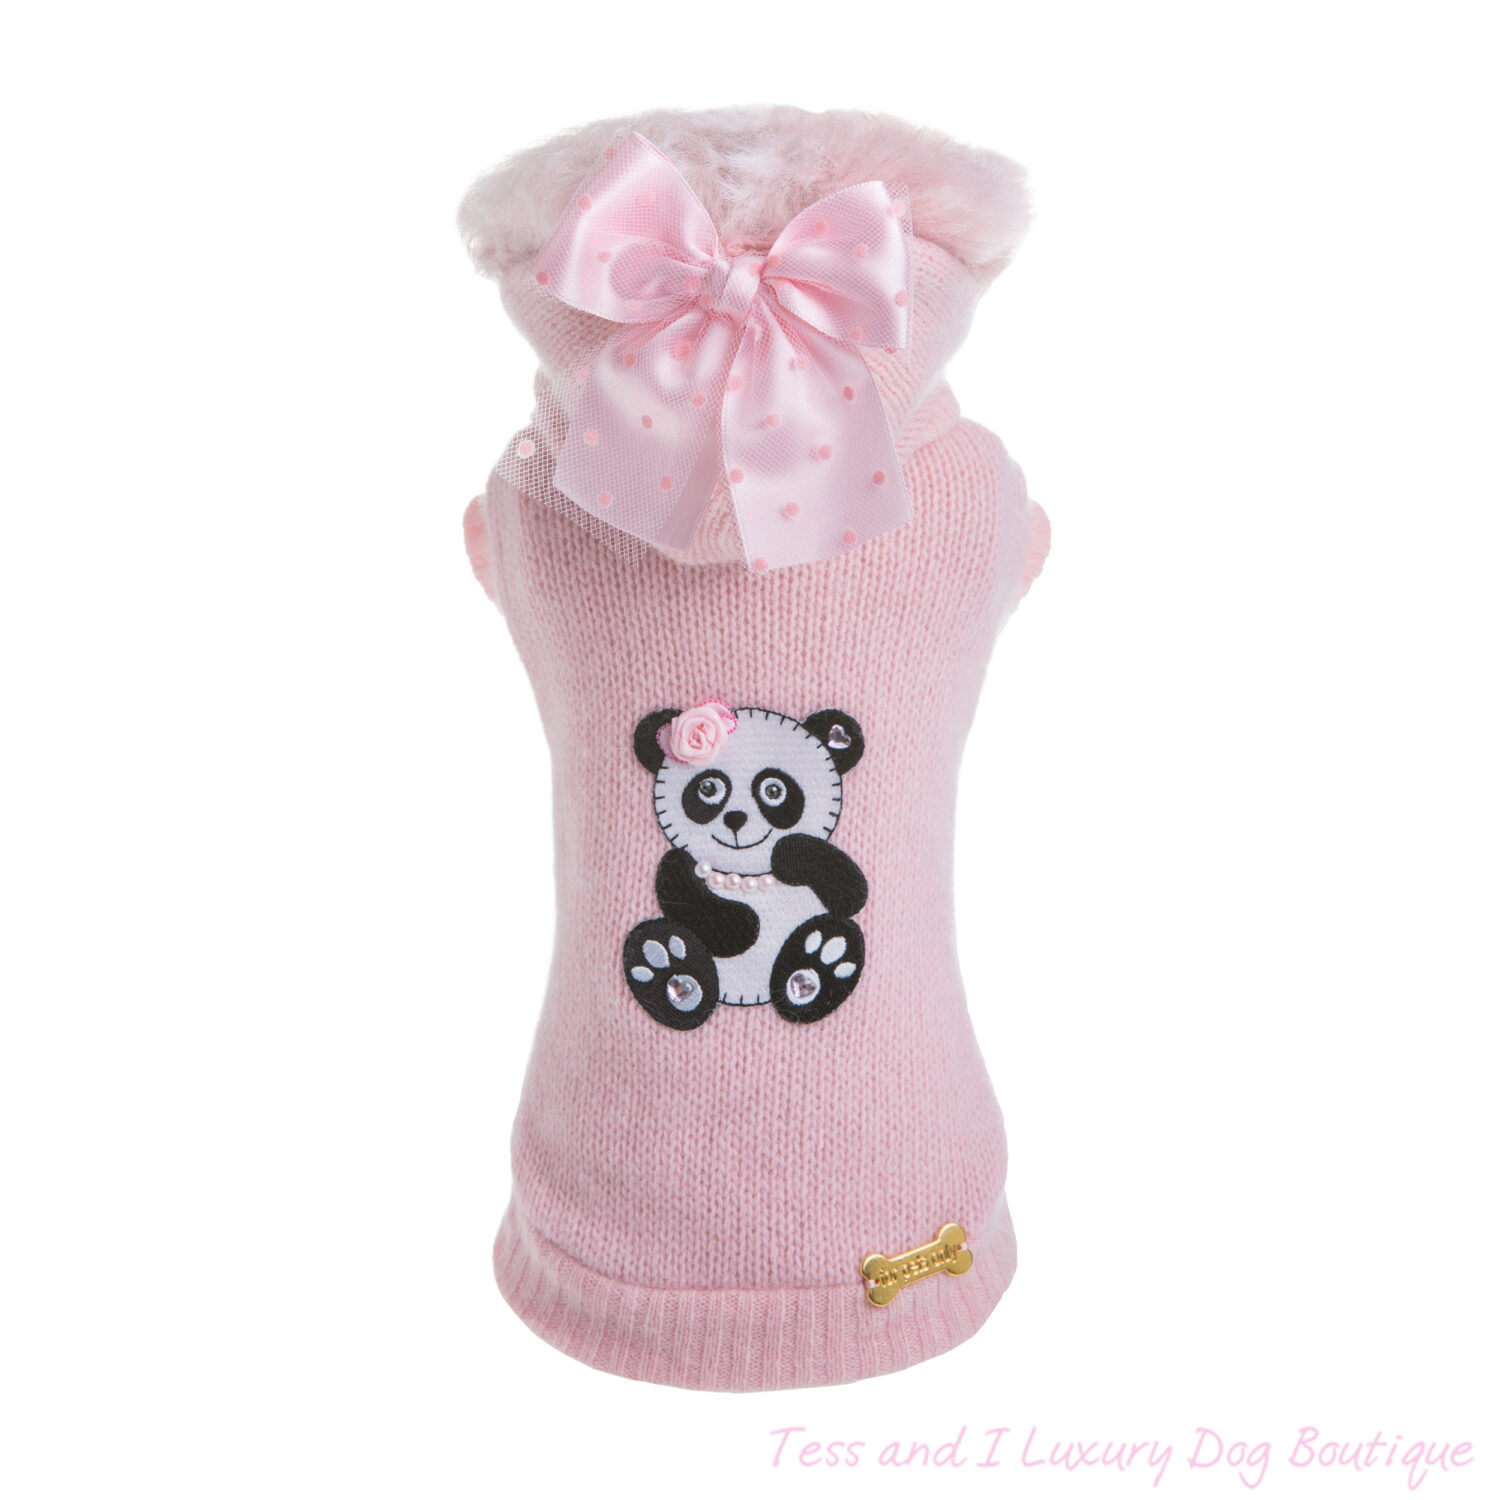 FOR PETS ONLY-CHIC PANDA PINK WOOL SWEATER-LIMITED EDITION